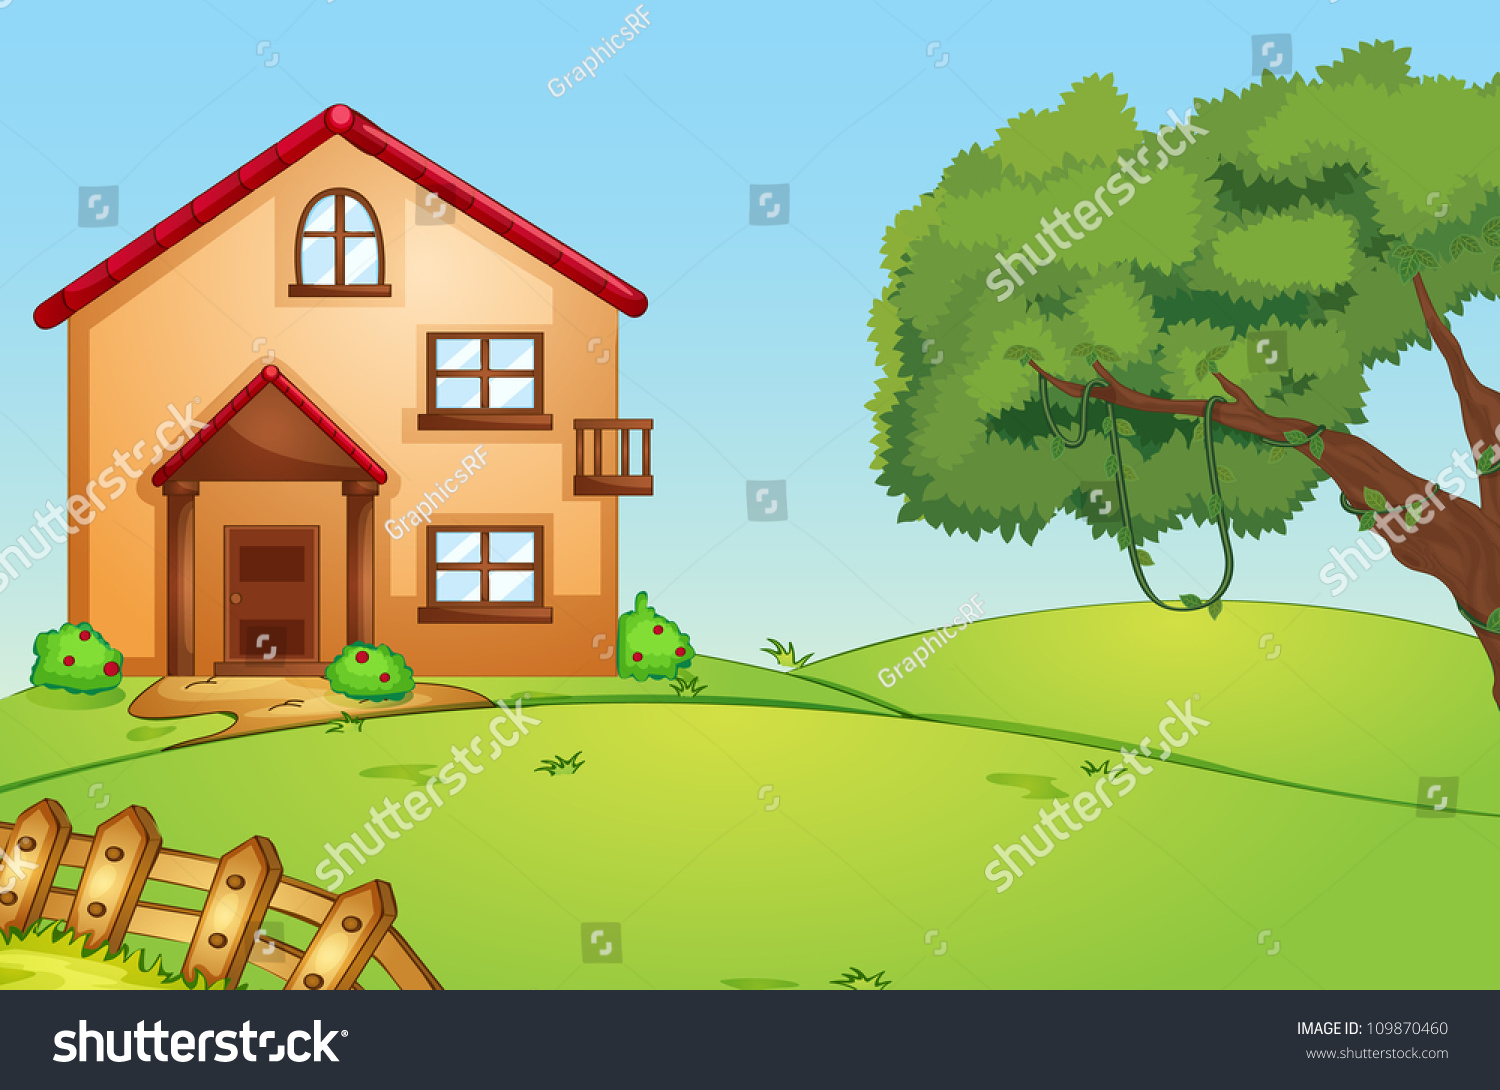 Illustration Of A Beautiful House In Green Nature